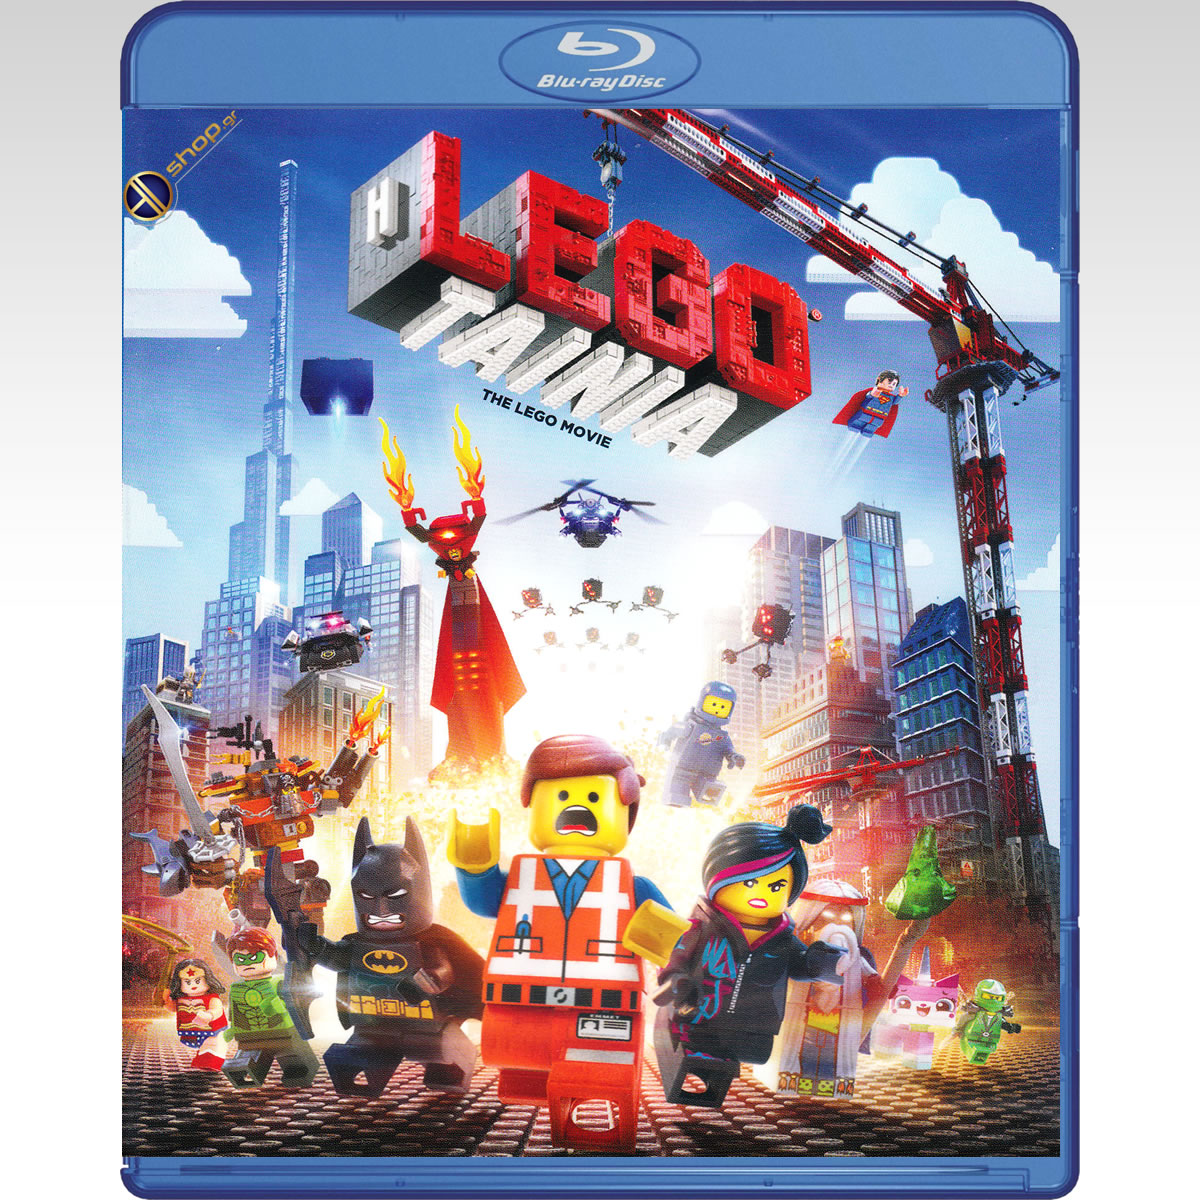 THE LEGO MOVIE - H TAINIA LEGO (BLU-RAY) & ΣΤΑ ΕΛΛΗΝΙΚΑ